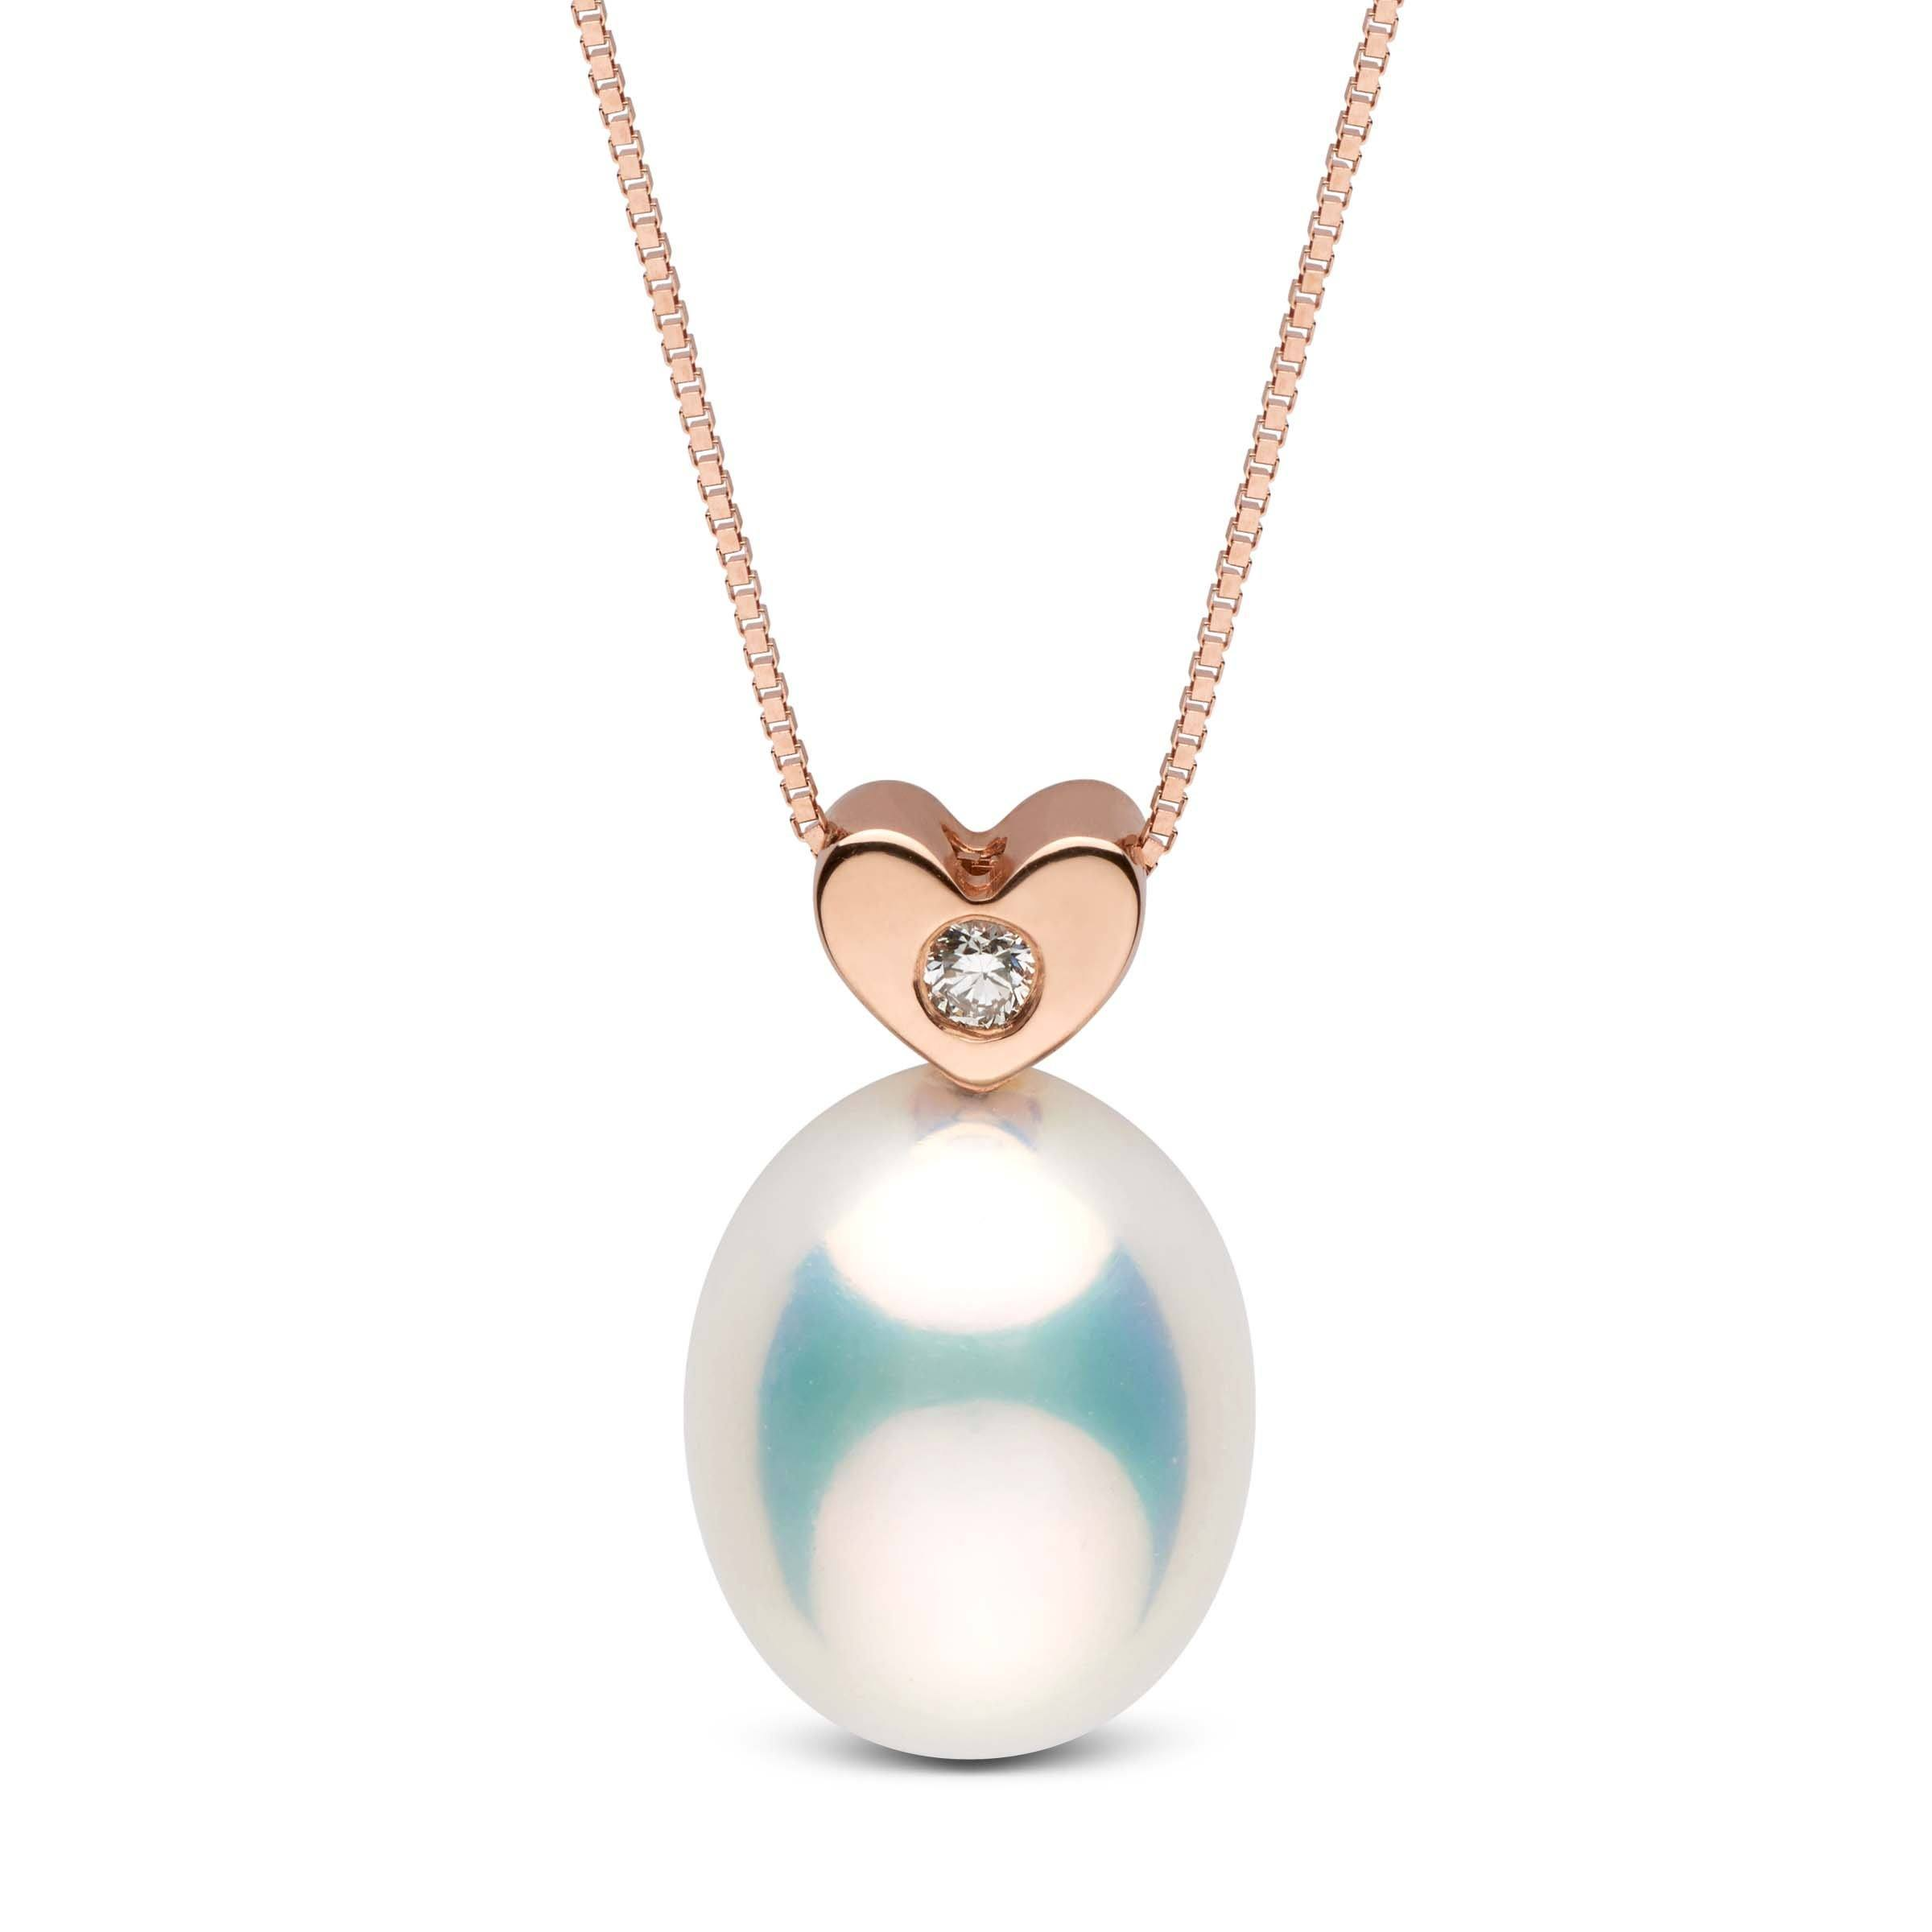 Baby Heart Collection Metallic White Freshwater Drop 9.0-10.0 mm Pearl and Diamond Pendant